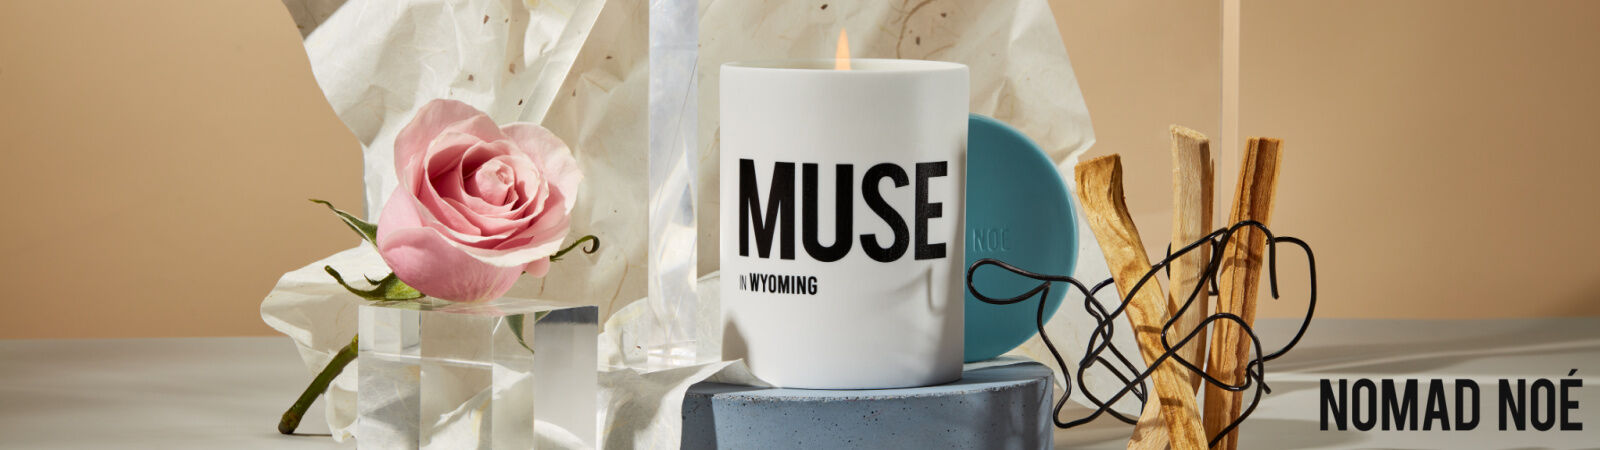 Nomad Noe Muse in Wyoming Scented Candle